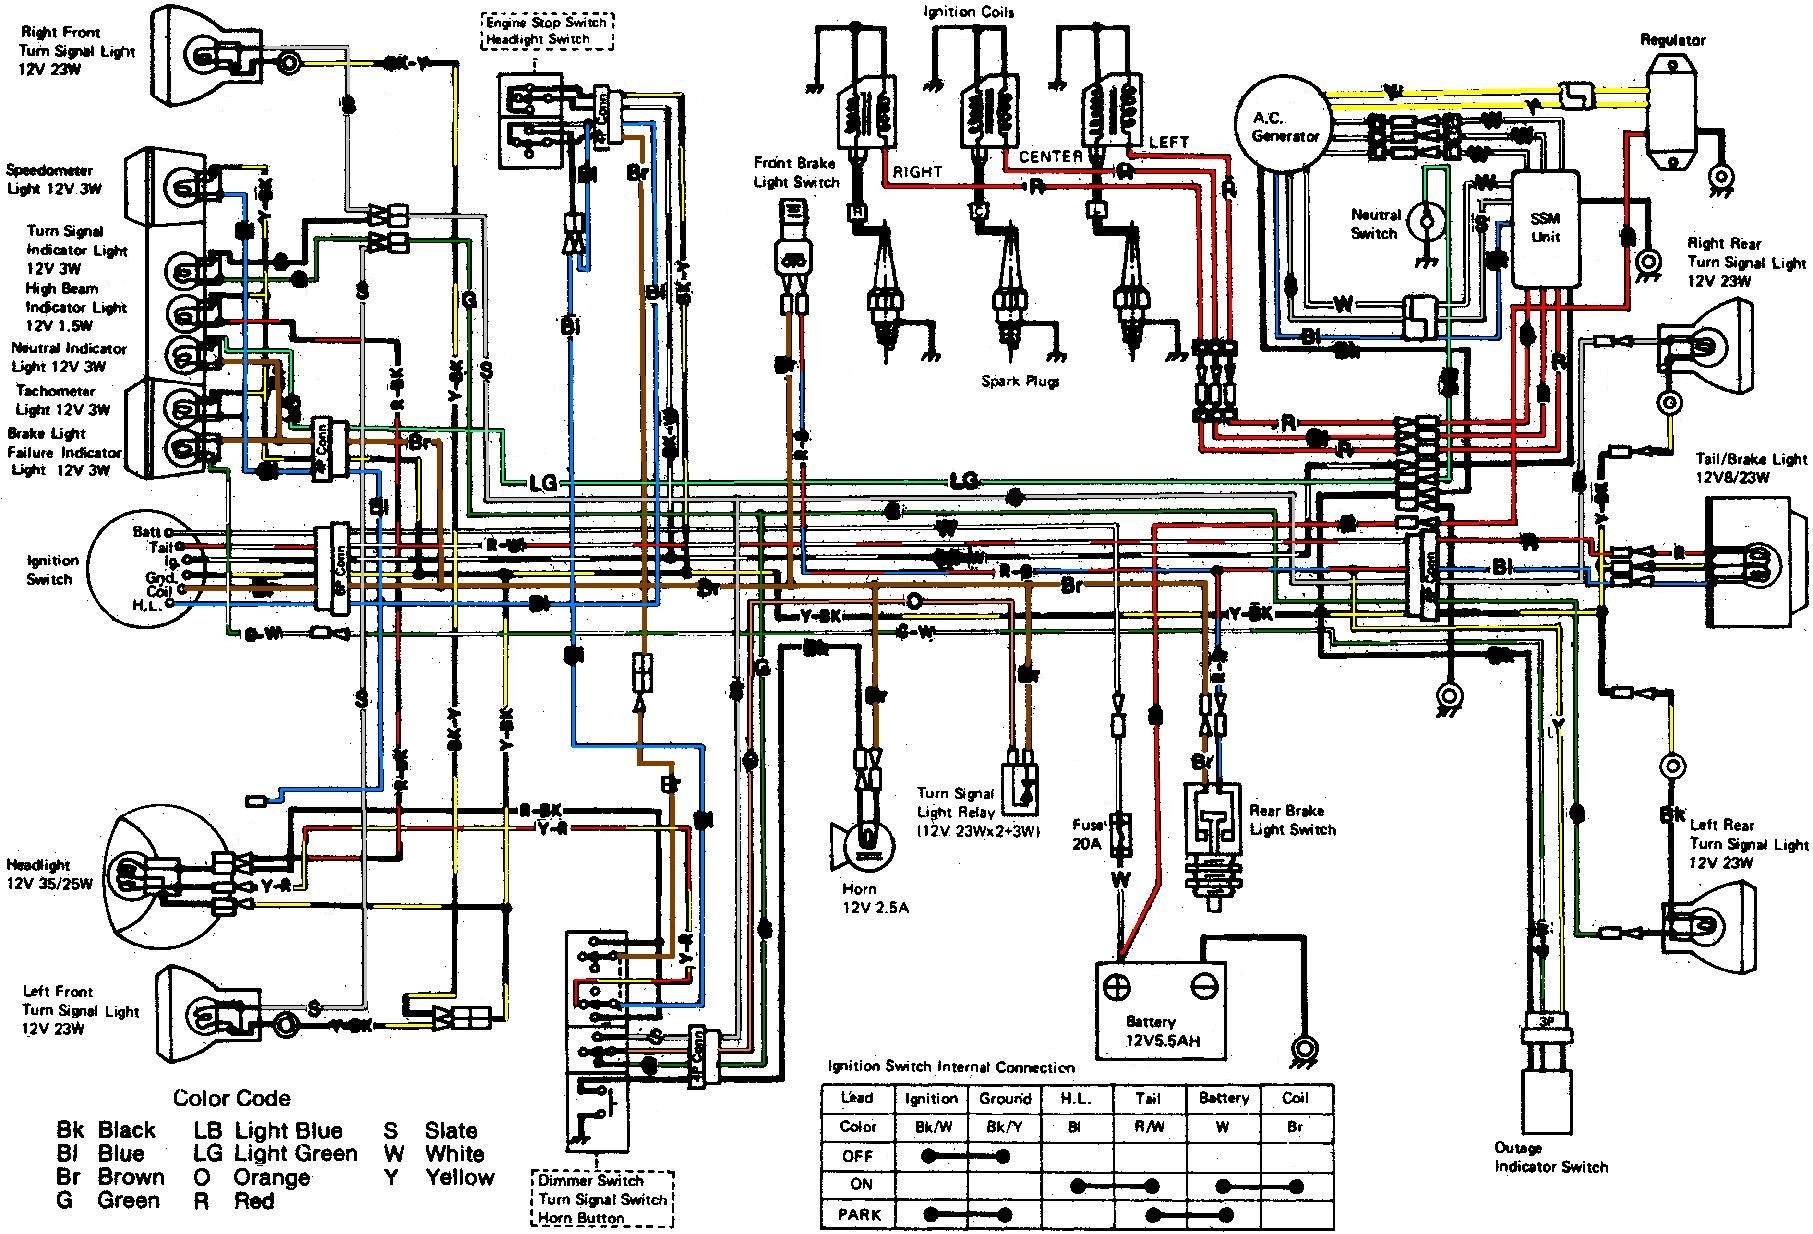 hight resolution of kawasaki bayou 220 wiring schematic